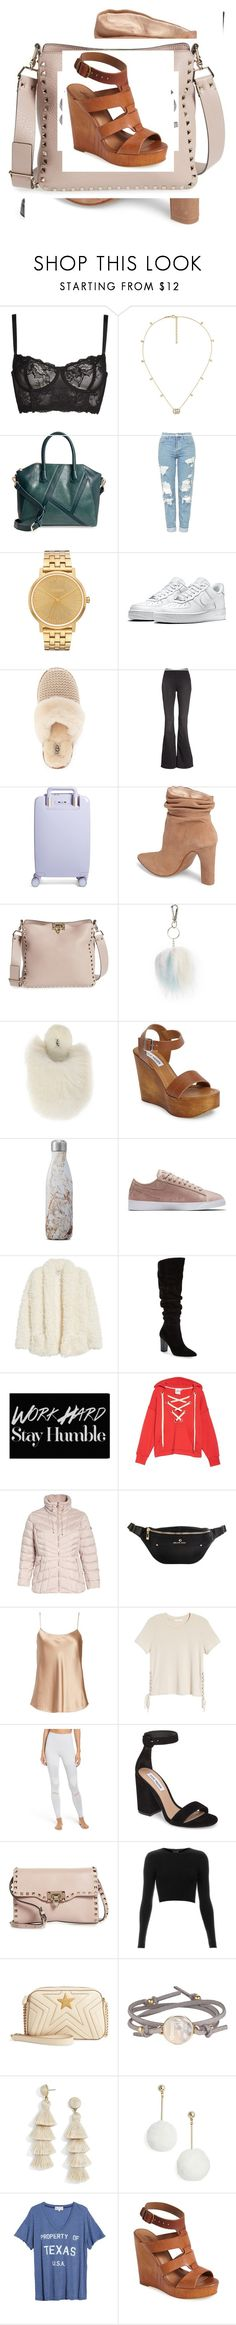 """Untitled #2199"" by devilsndesign on Polyvore featuring Naja, Gucci, Sole Society, Topshop, Nixon, NIKE, UGG, Free People, Raden and Kristin Cavallari"